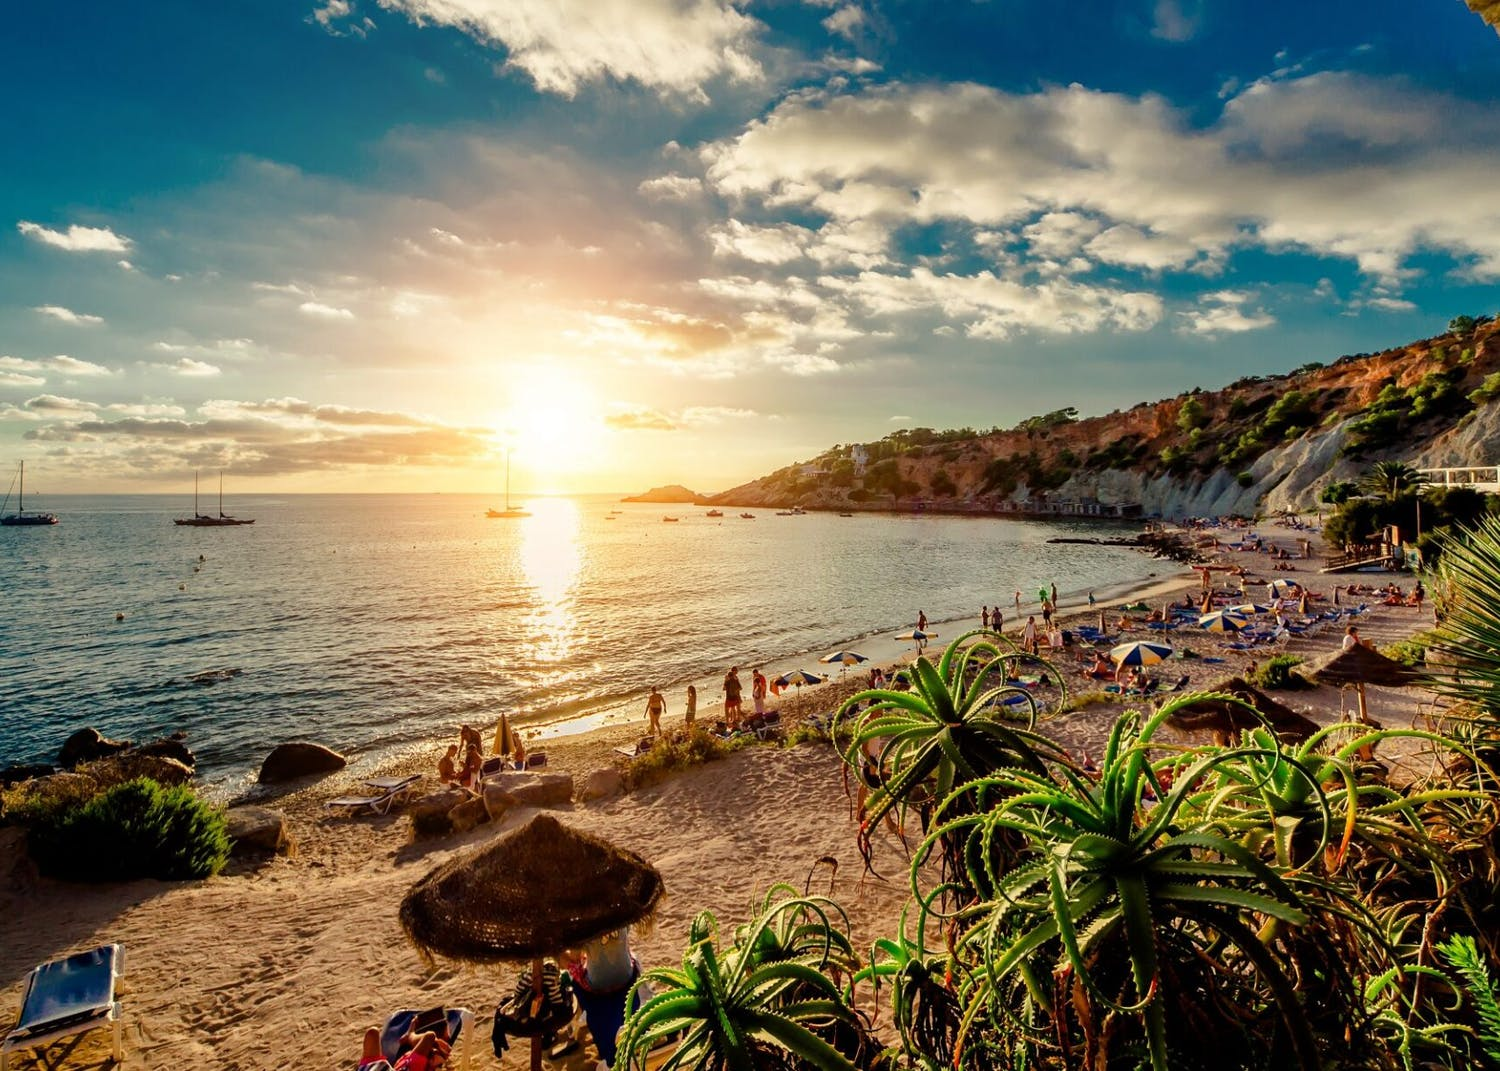 Sunset over luxury beach villas and Balearics superyachts for charter in Ibiza Spain